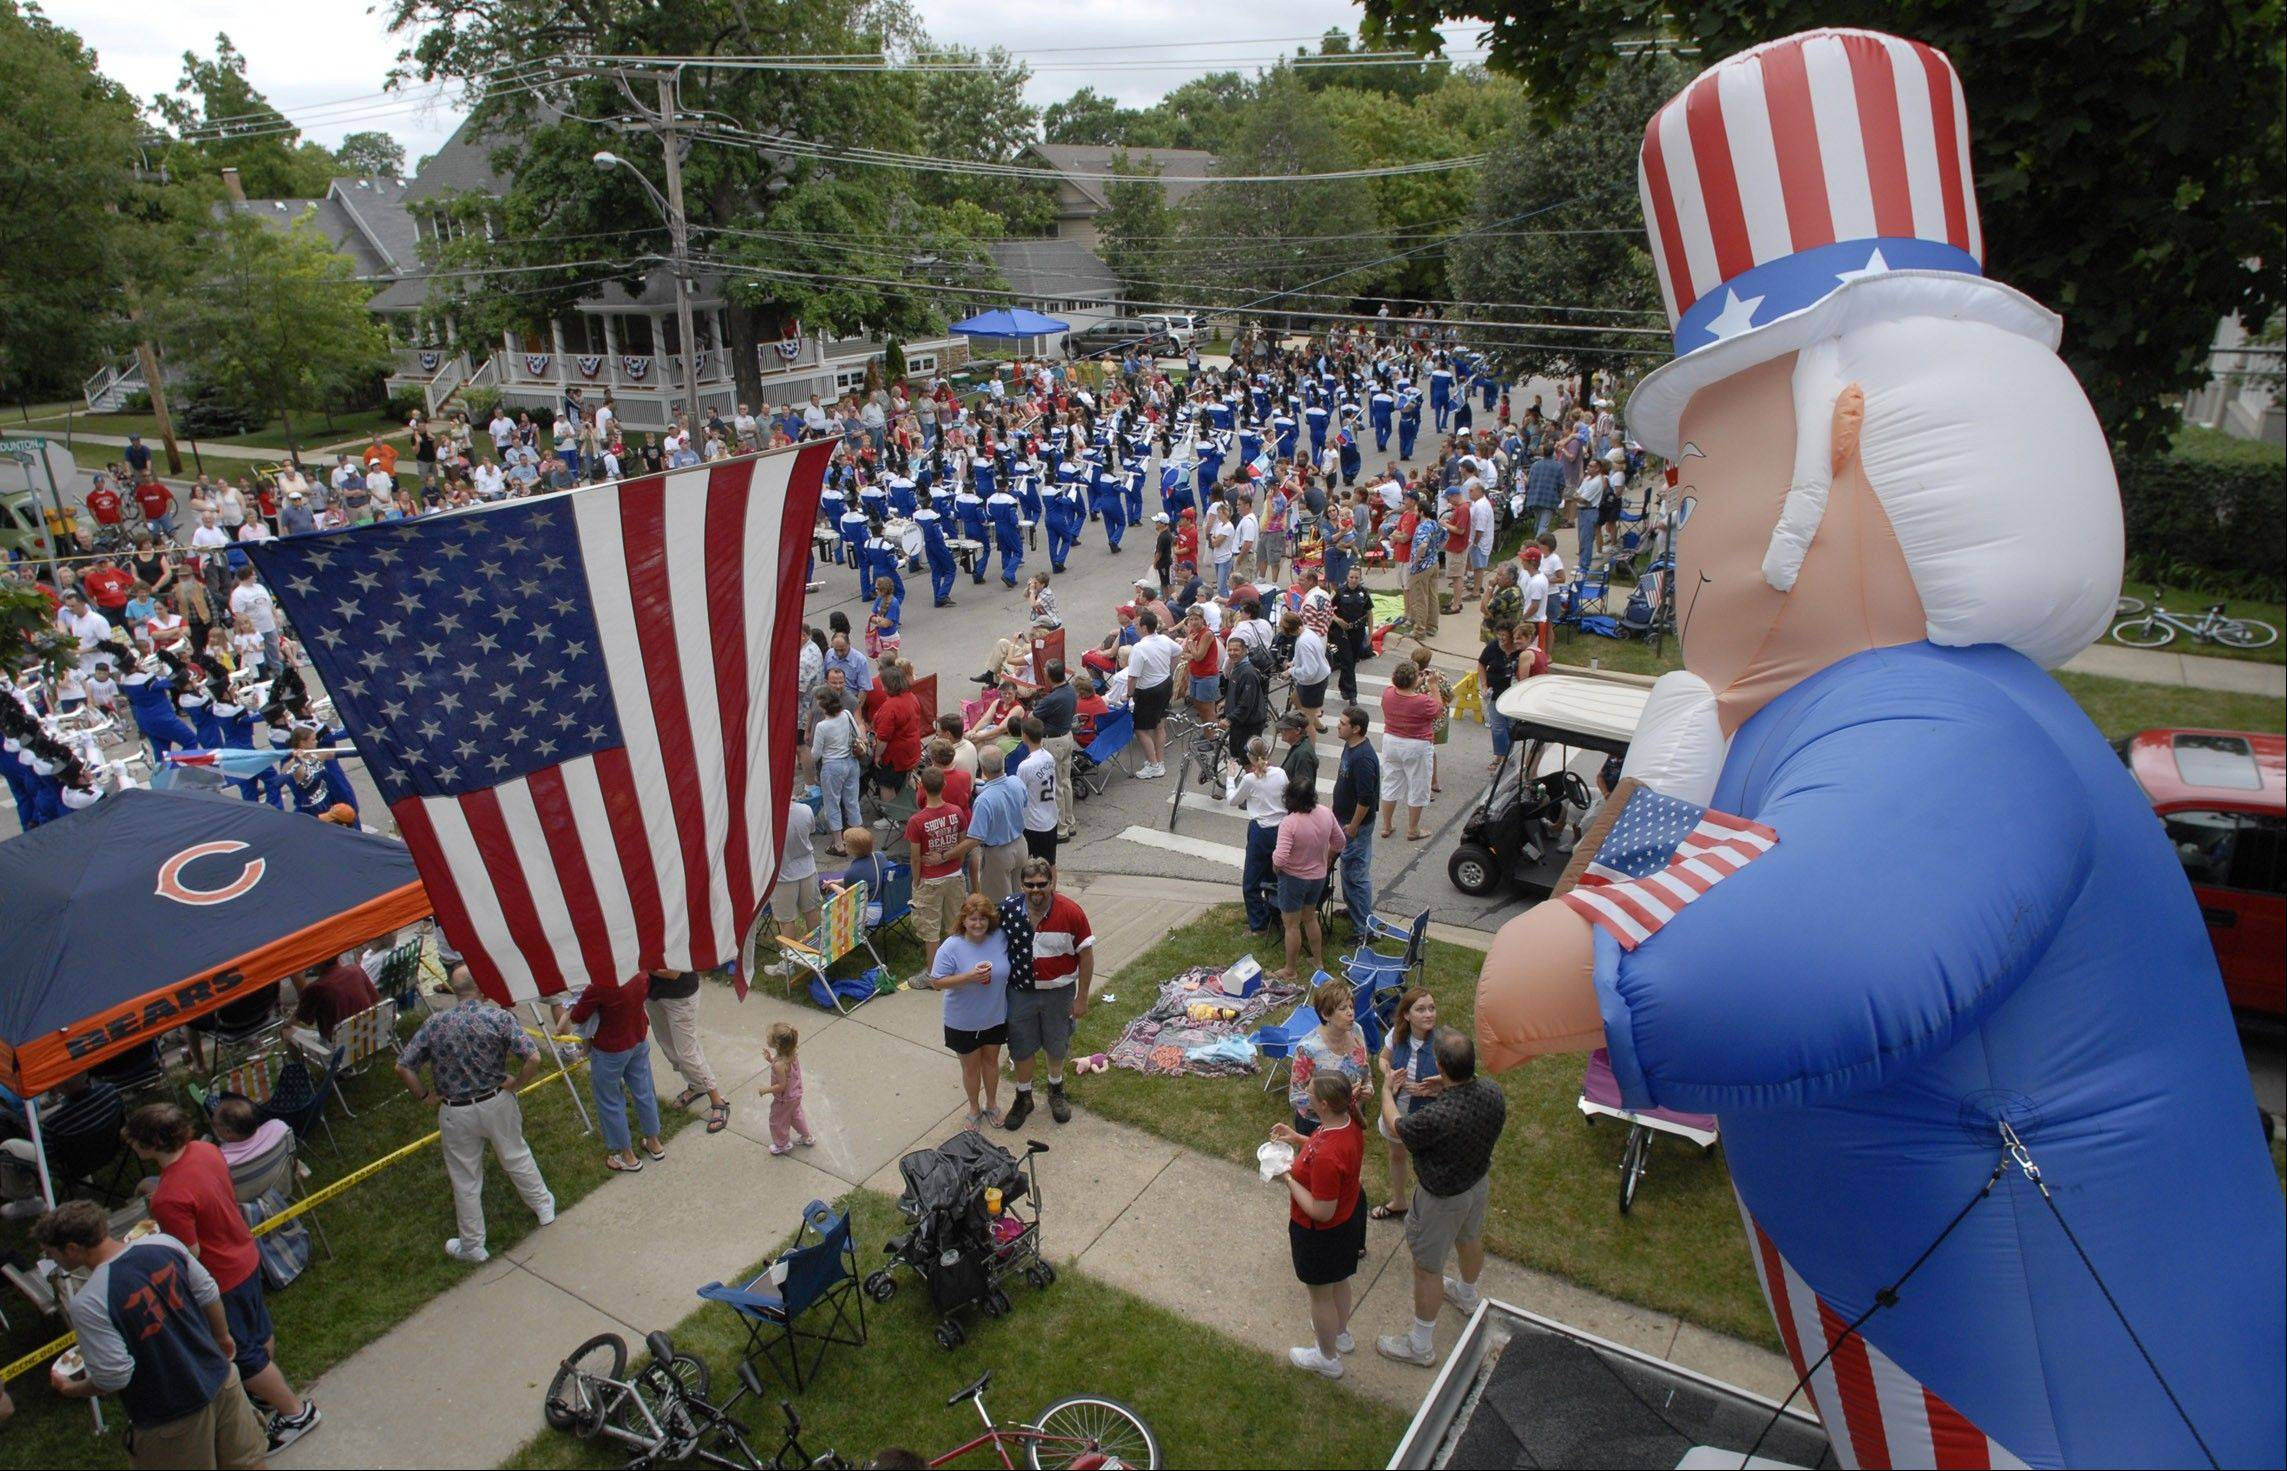 Arlington Heights' July 4 parade is one of the biggest in the Chicago area, and this year will have a New York City firetruck that responded to the 9/11 disaster.